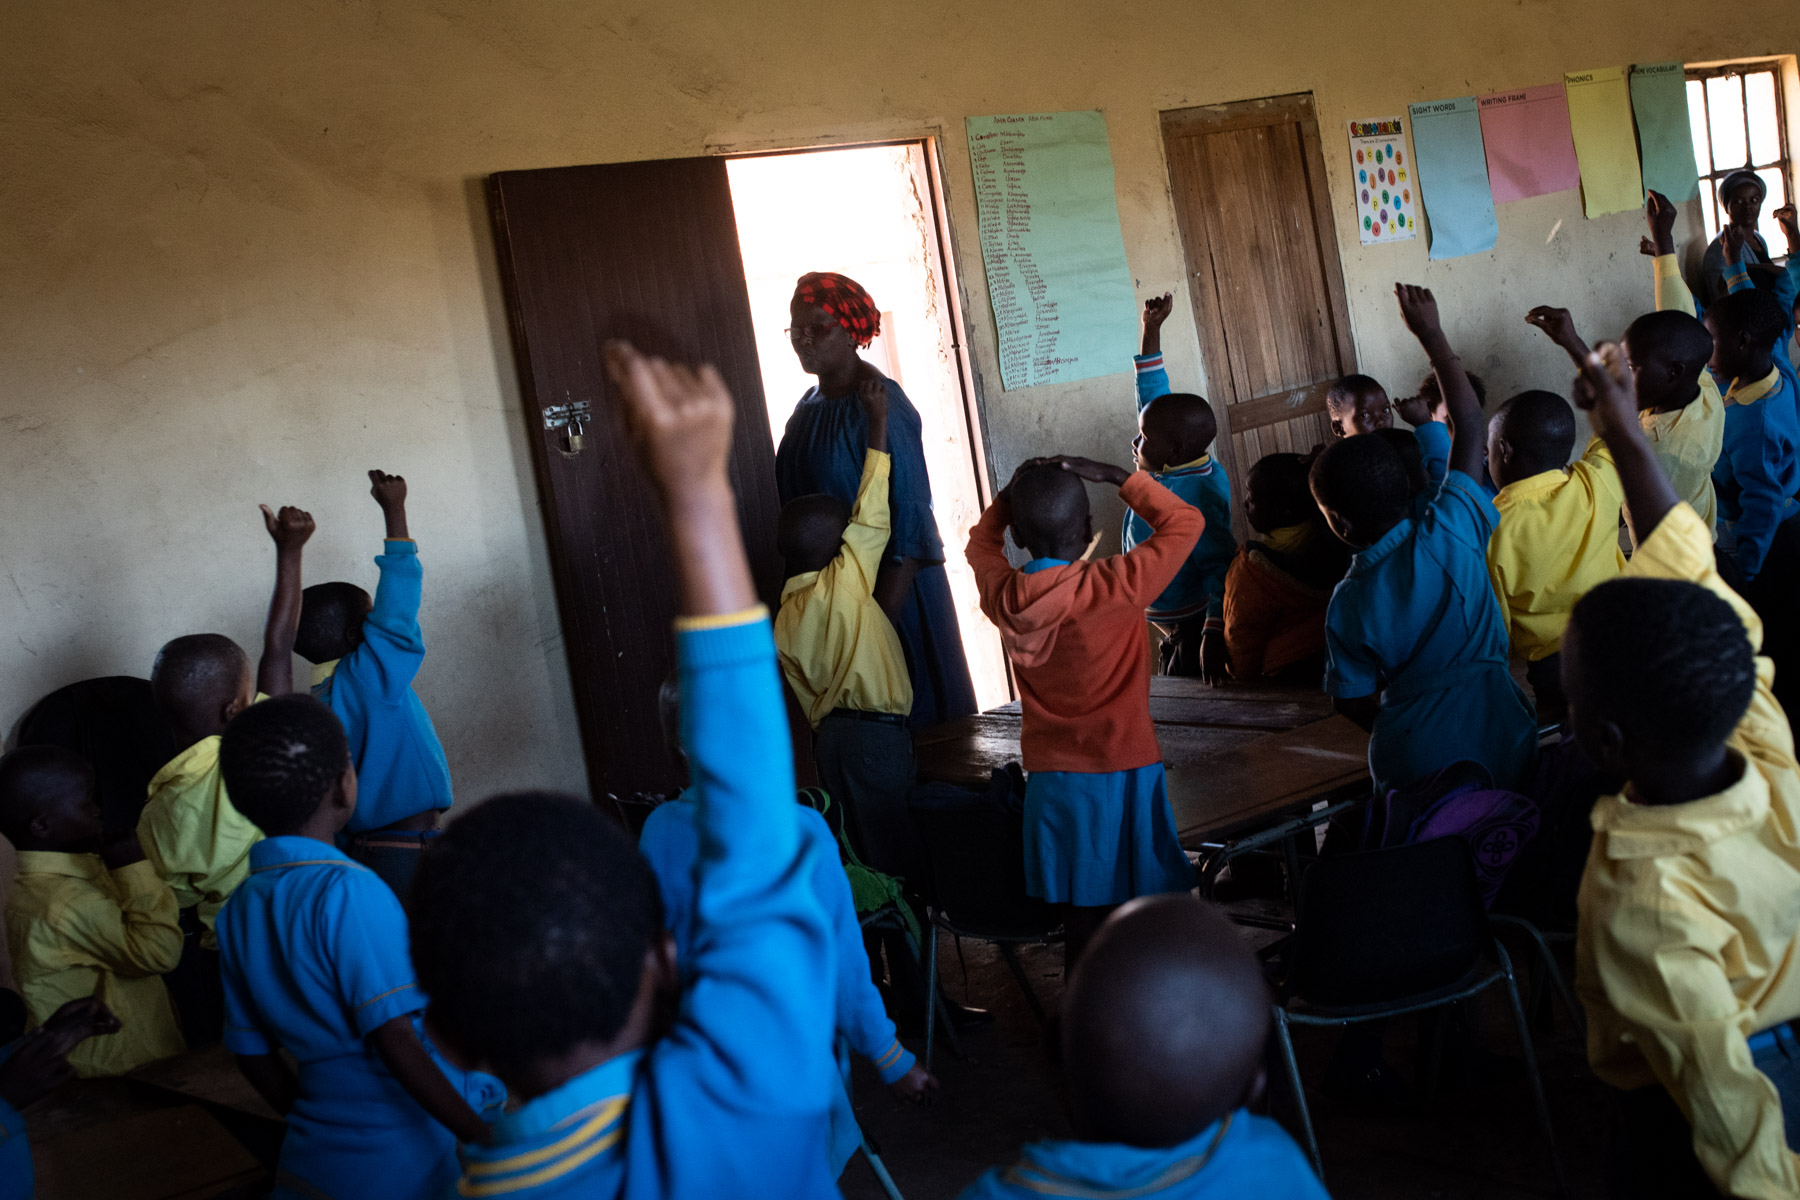 13 April 2108: Veronica Madikizela teaches her class of over 60 students in a dilapidated mud structure at Mjanyelwa Junior Secondary School near Bizana in the Eastern Cape.